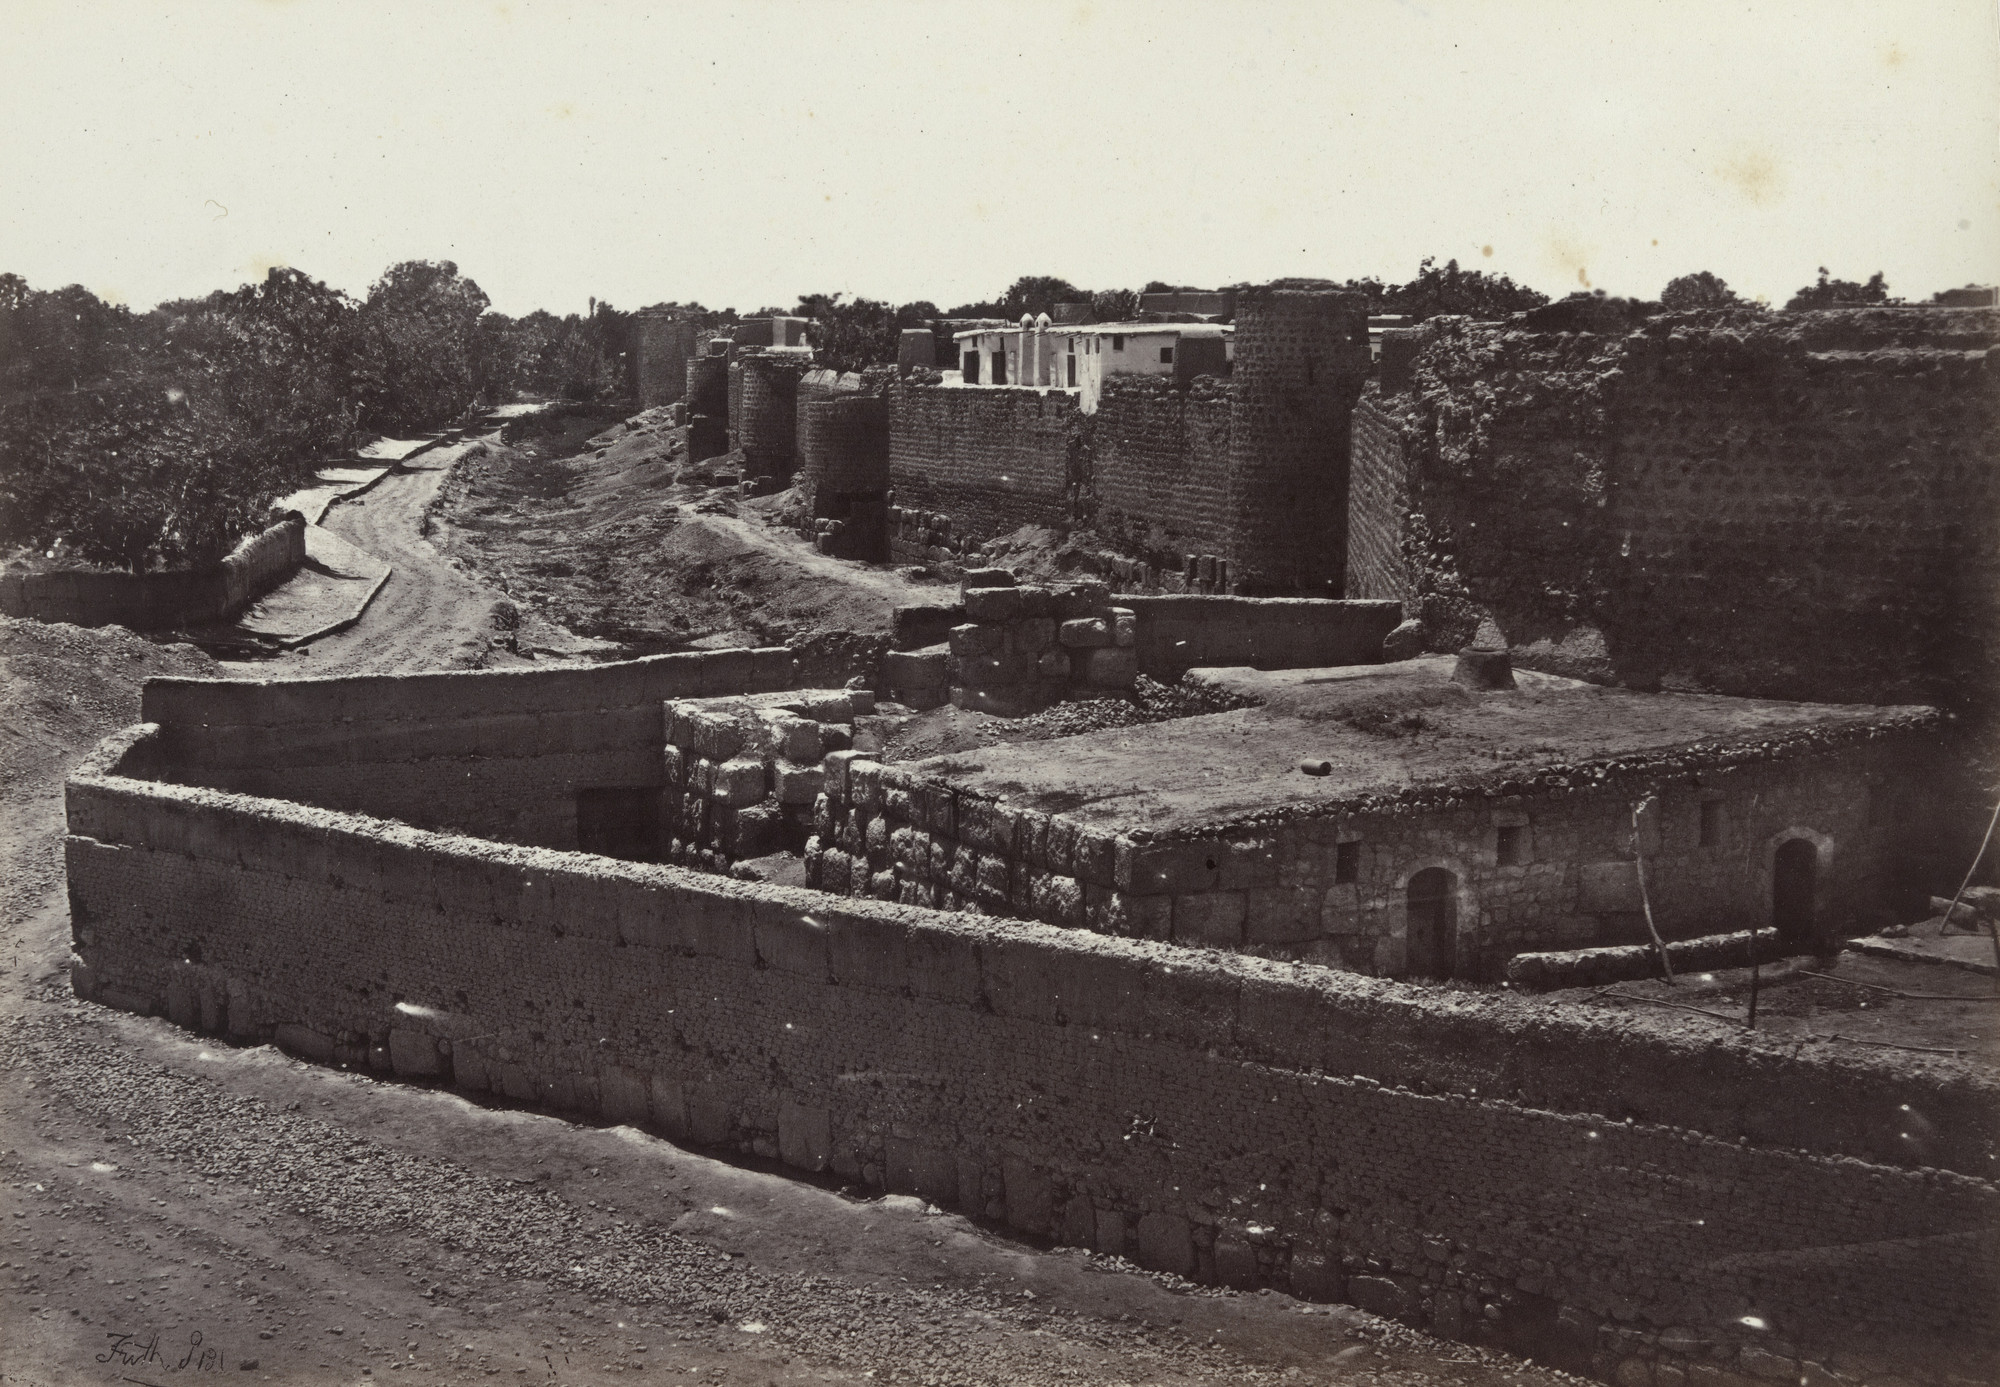 Francis Frith. St. Paul's Wall, Damascus (Plate 31). 1858-60